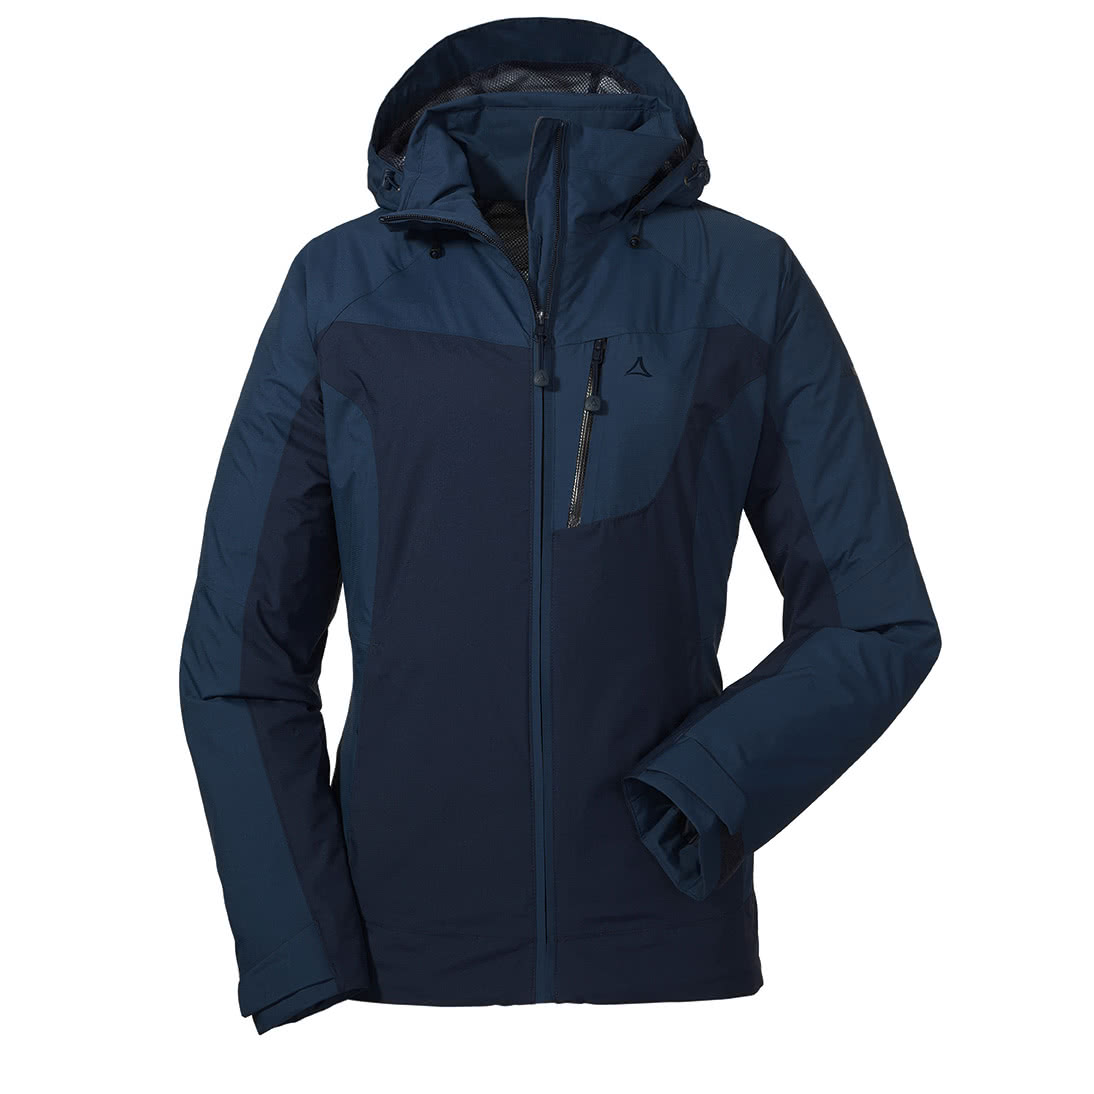 the latest 13bc5 8cc94 Schöffel Damen Jacke ZipIn! Jacket Skopje1 11895-8180 44 ...